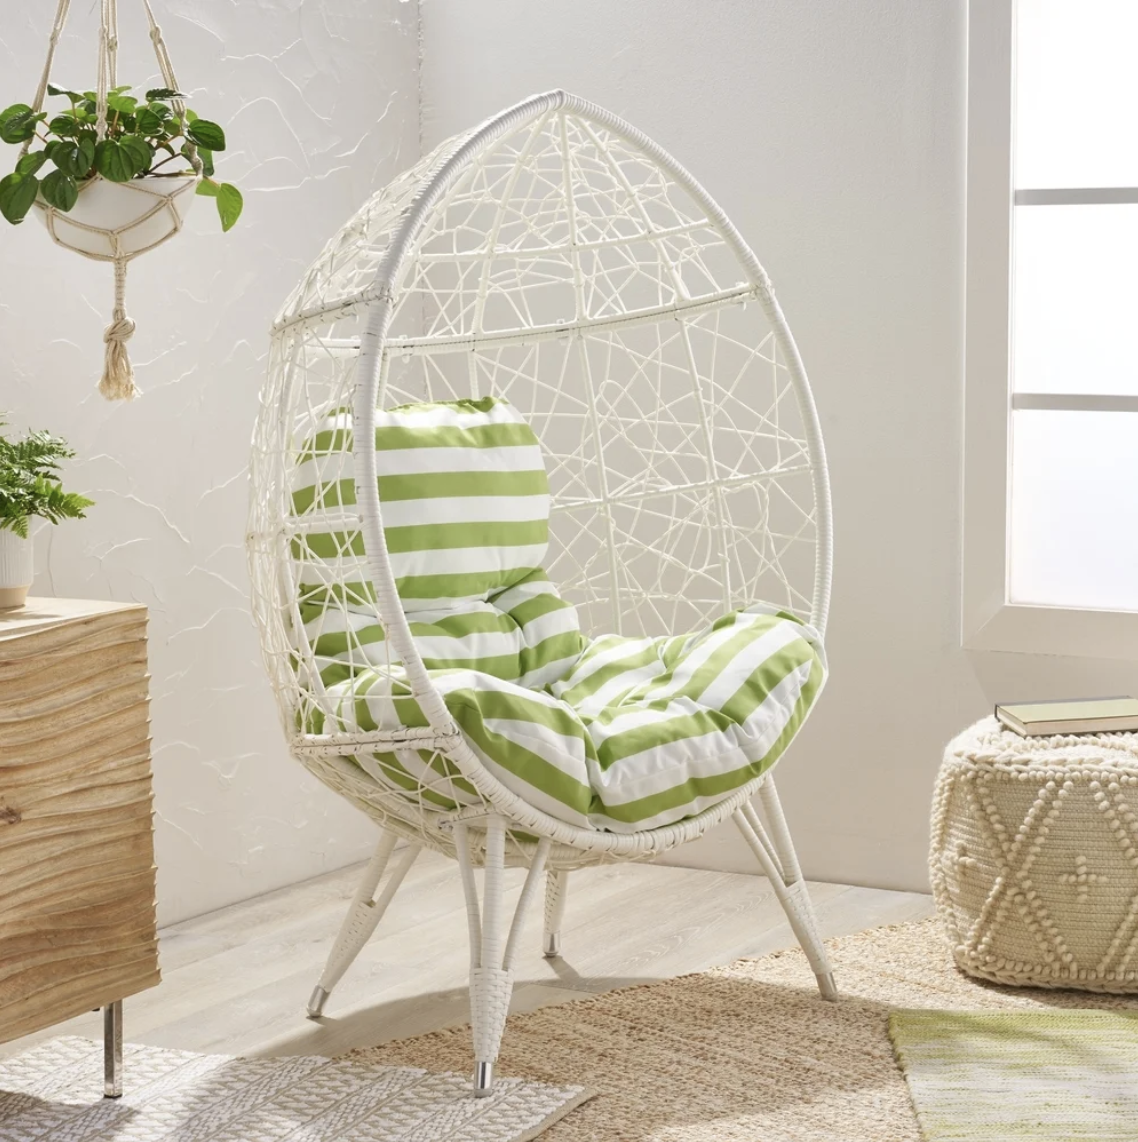 Target Southport Patio Egg Chair,Target Southport Patio Egg Chair dupes, affordable dupes for theTarget Southport Patio Egg Chair, egg chair inspiration, egg chair home ideas, egg chairs, wicker egg chairs, hanging egg chairs,interior, home decor, home interior, interior styling, target dupes, egg chair indoor furnitureinspiration,Jennifer Worman, Red Soles and Red Wine, Gavilan Indoor Wicker Teardrop Chair